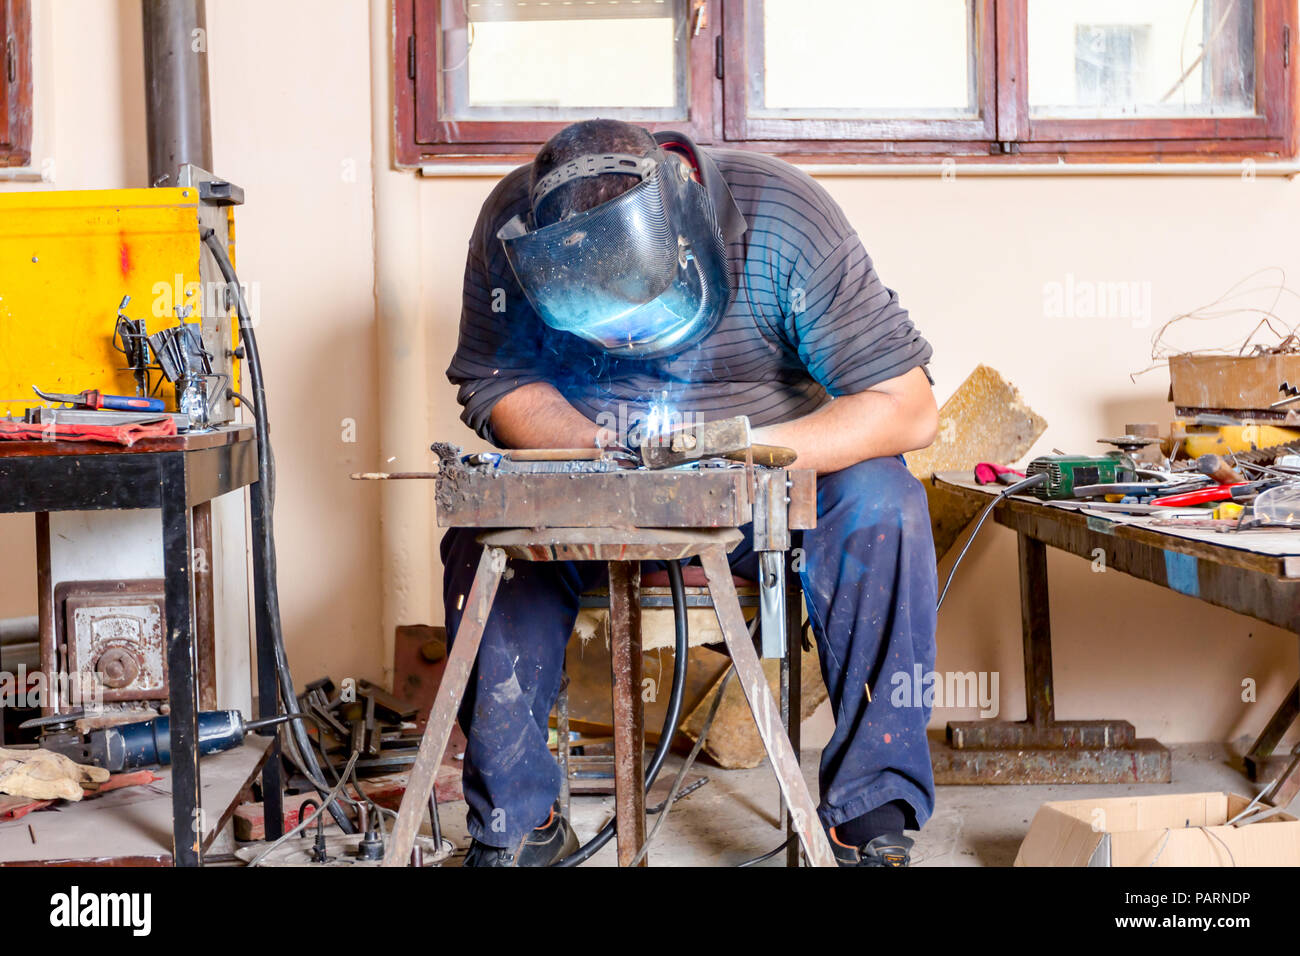 Sculptor is using arc welding to assembly metal sculpture barehanded with protective mask. - Stock Image